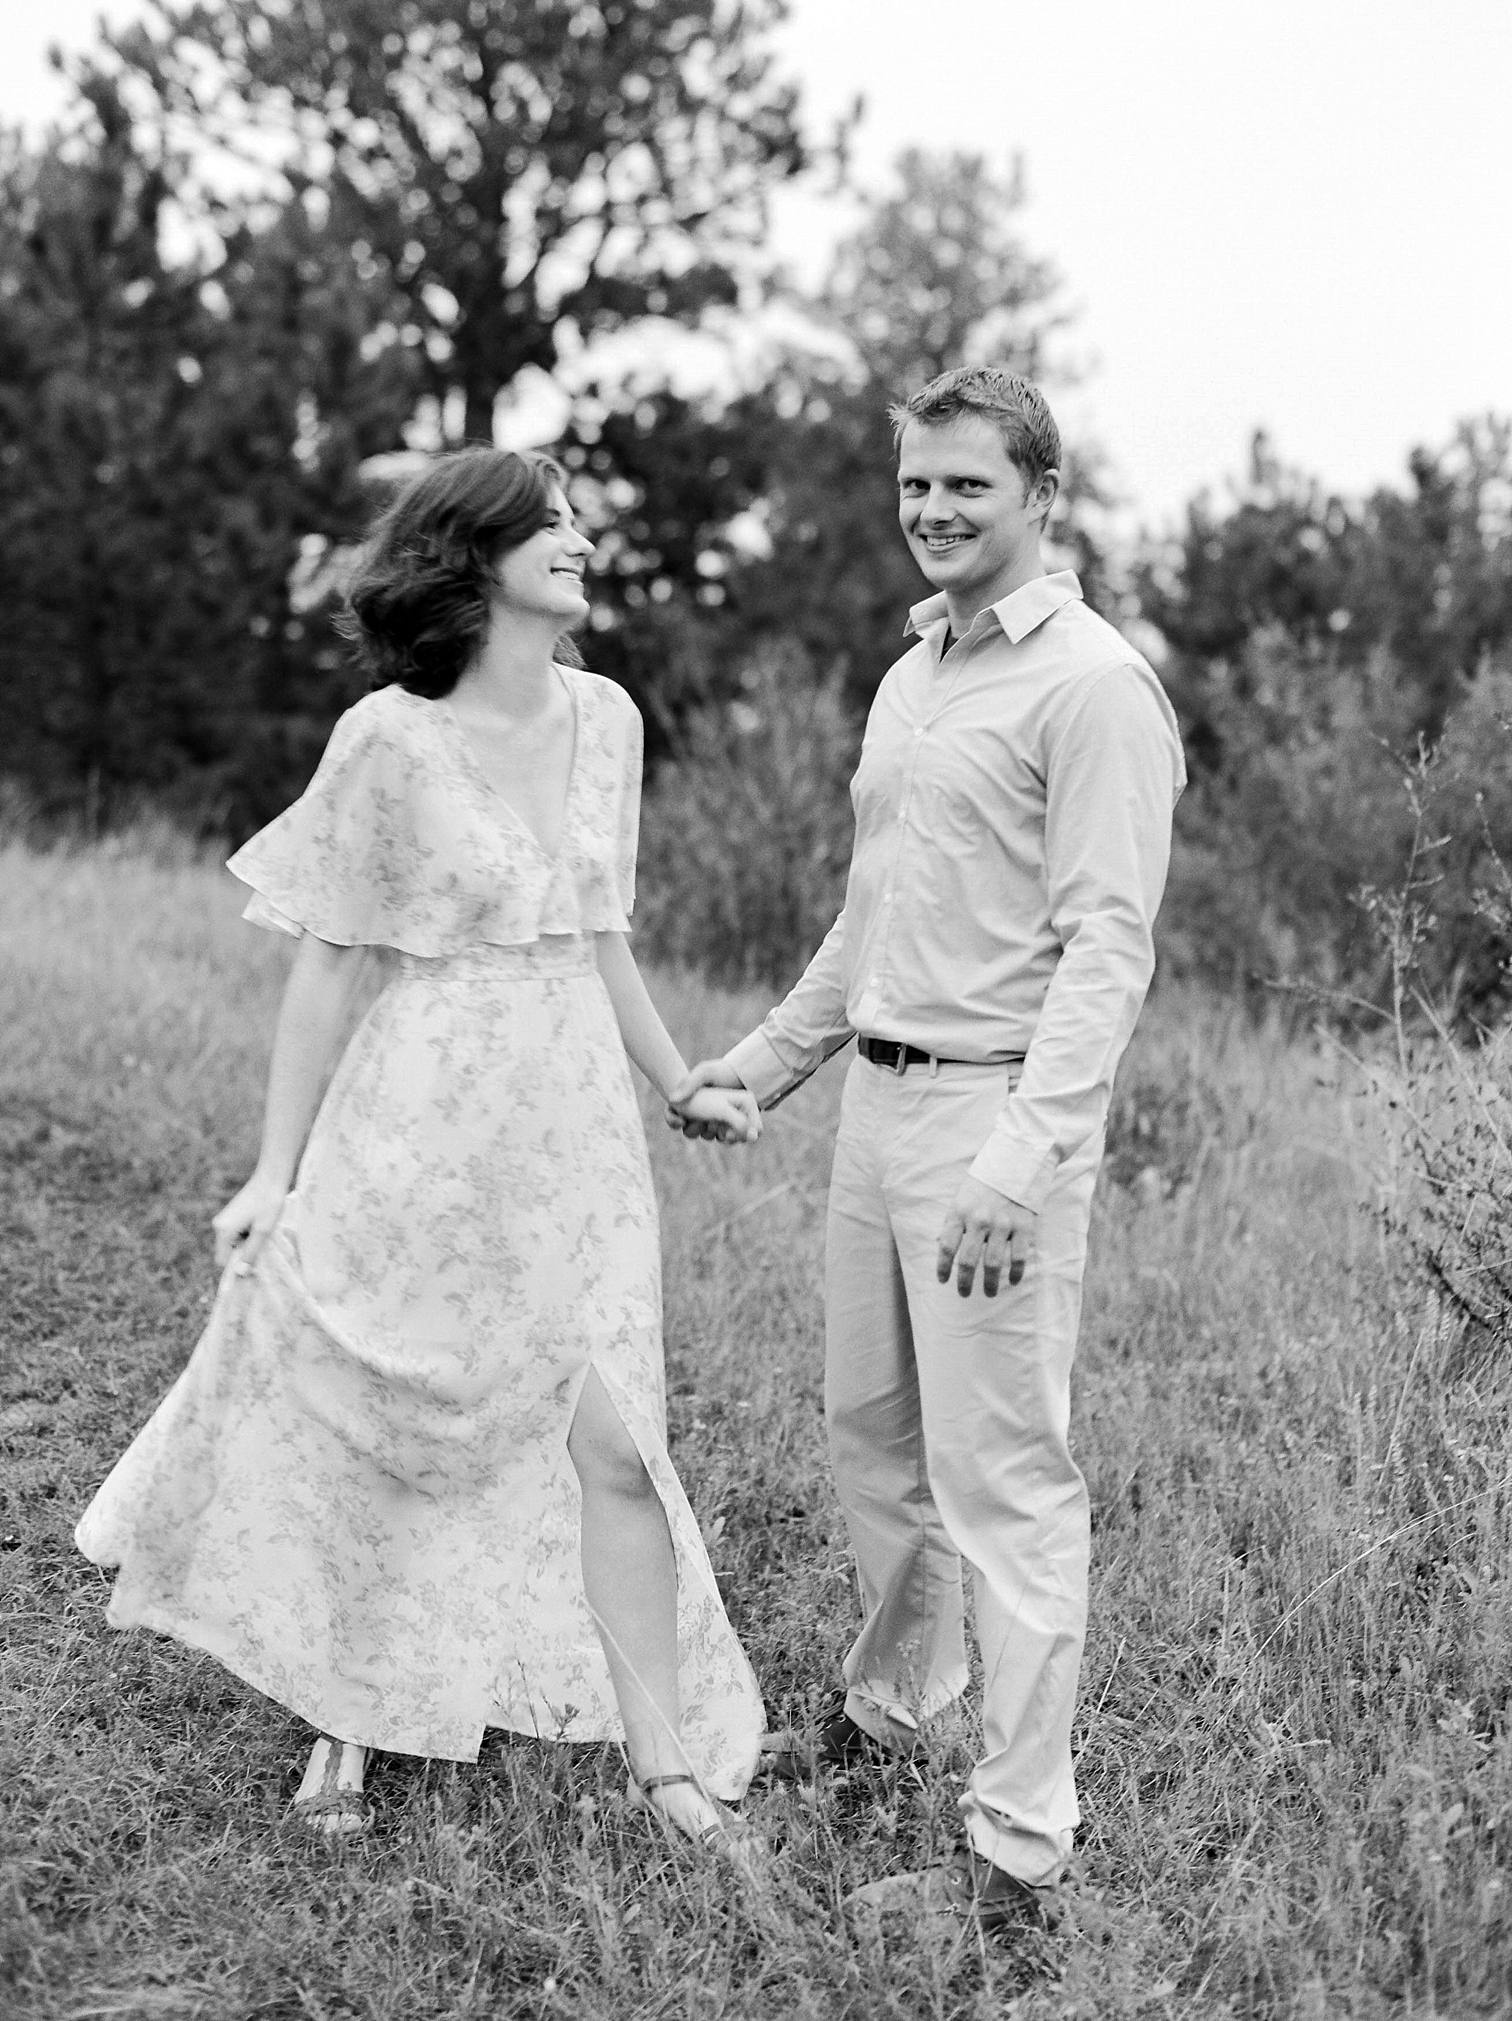 Colorado Engagement Photography, Colorado Engagement Photos, Denver Wedding Photographer, Engagement Photos In Colorado, Film Photographers In Colorado, Rolleiflex Portraits, Film Wedding Photographers, Best Engagement Photos In Colorado, Danielle DeFiore Photographers, Black And White Wedding Photos, Engaged Couple Laughing